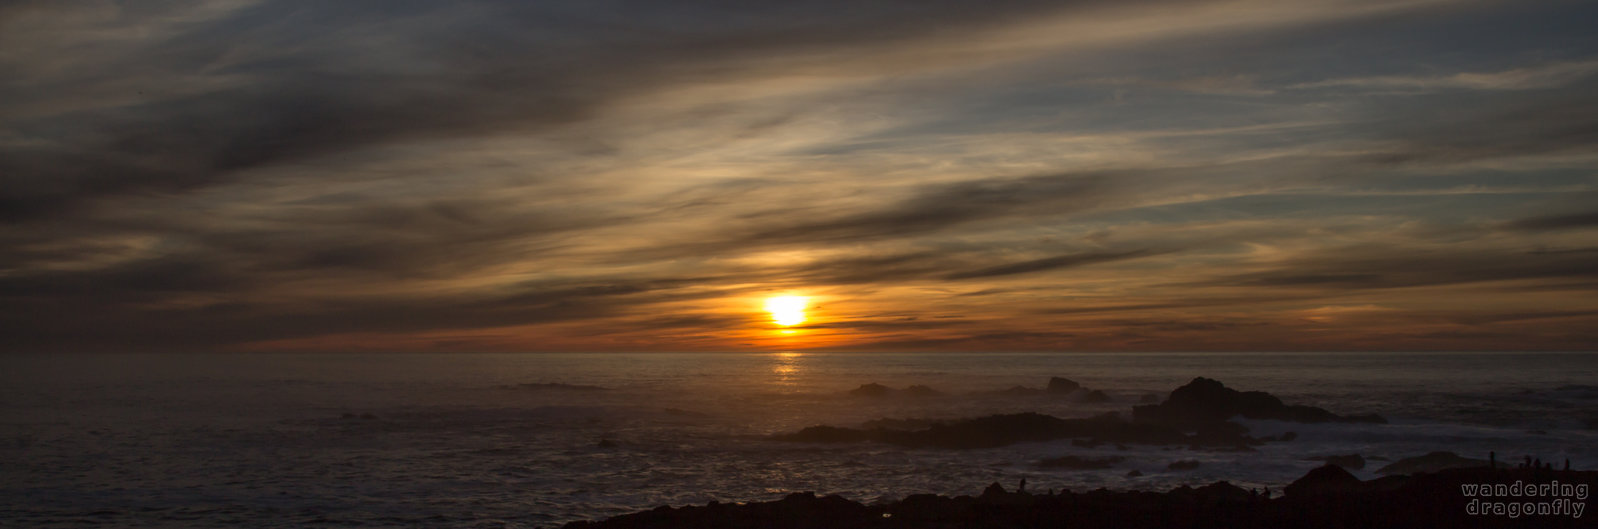 Transition from darkness to brightness -- cloud, ocean, rock, sun, sunset, water, wave